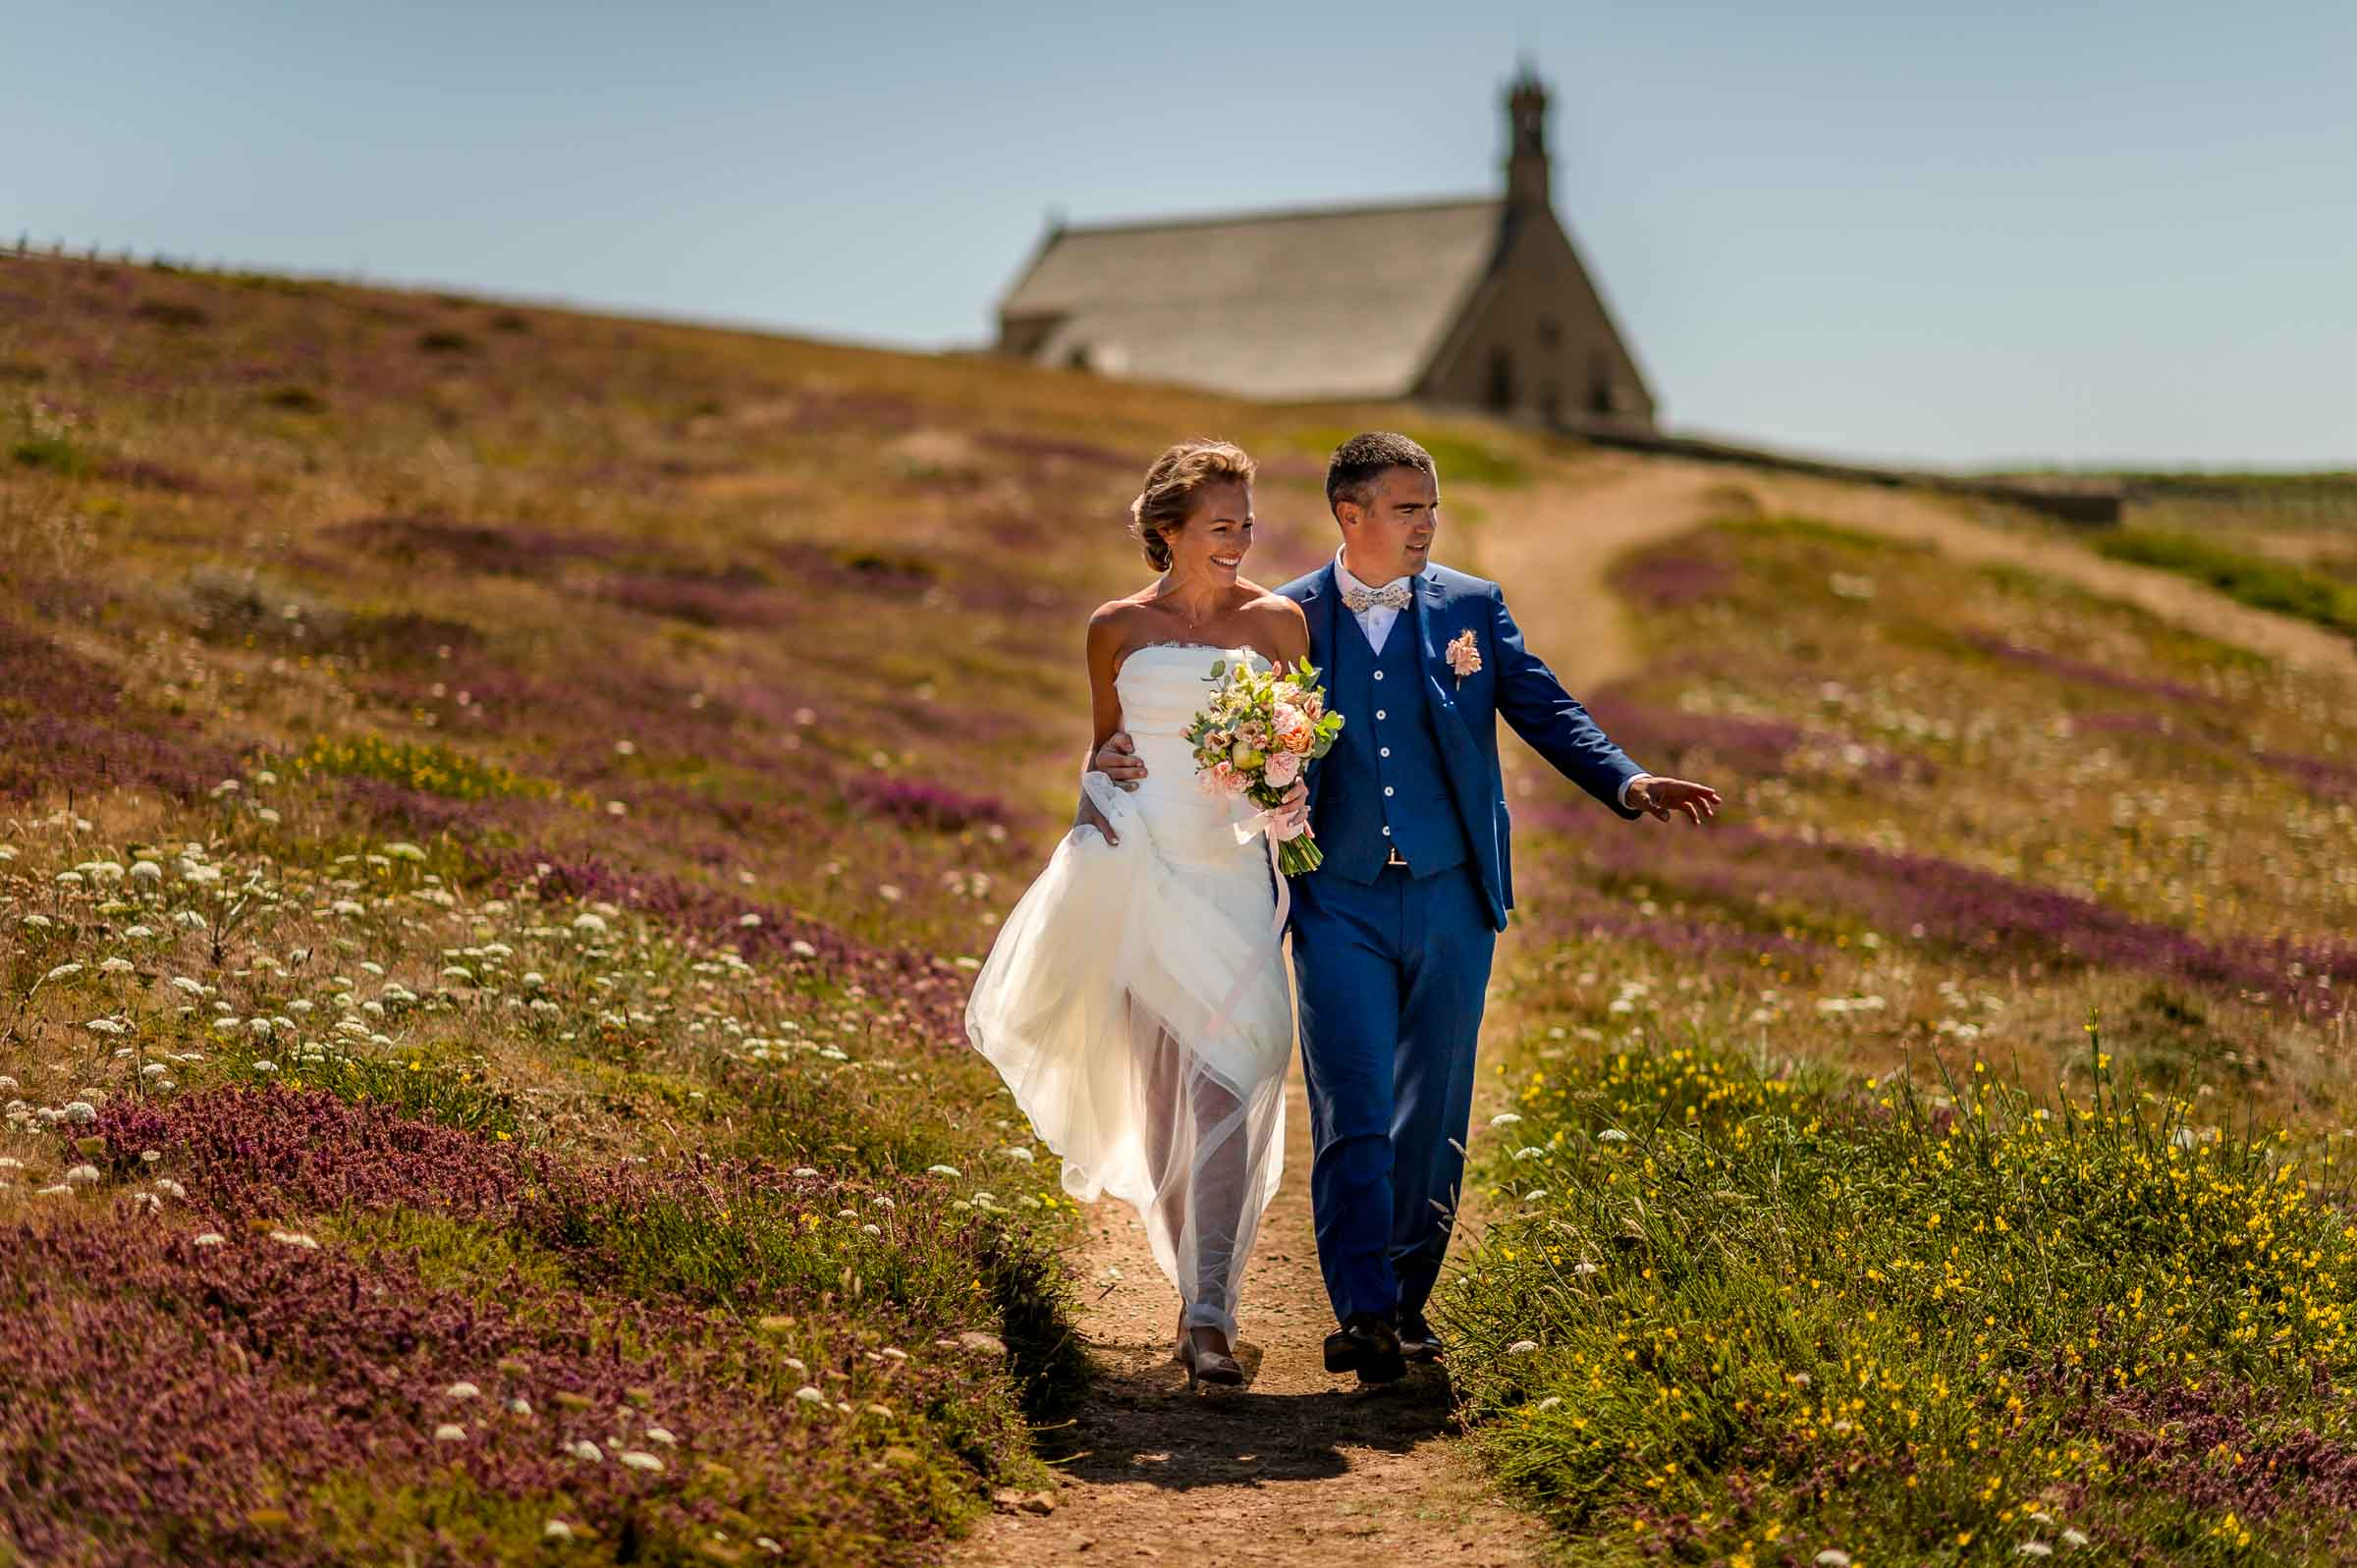 Couple on path from country church - photo by Gaelle Le Berre Photography